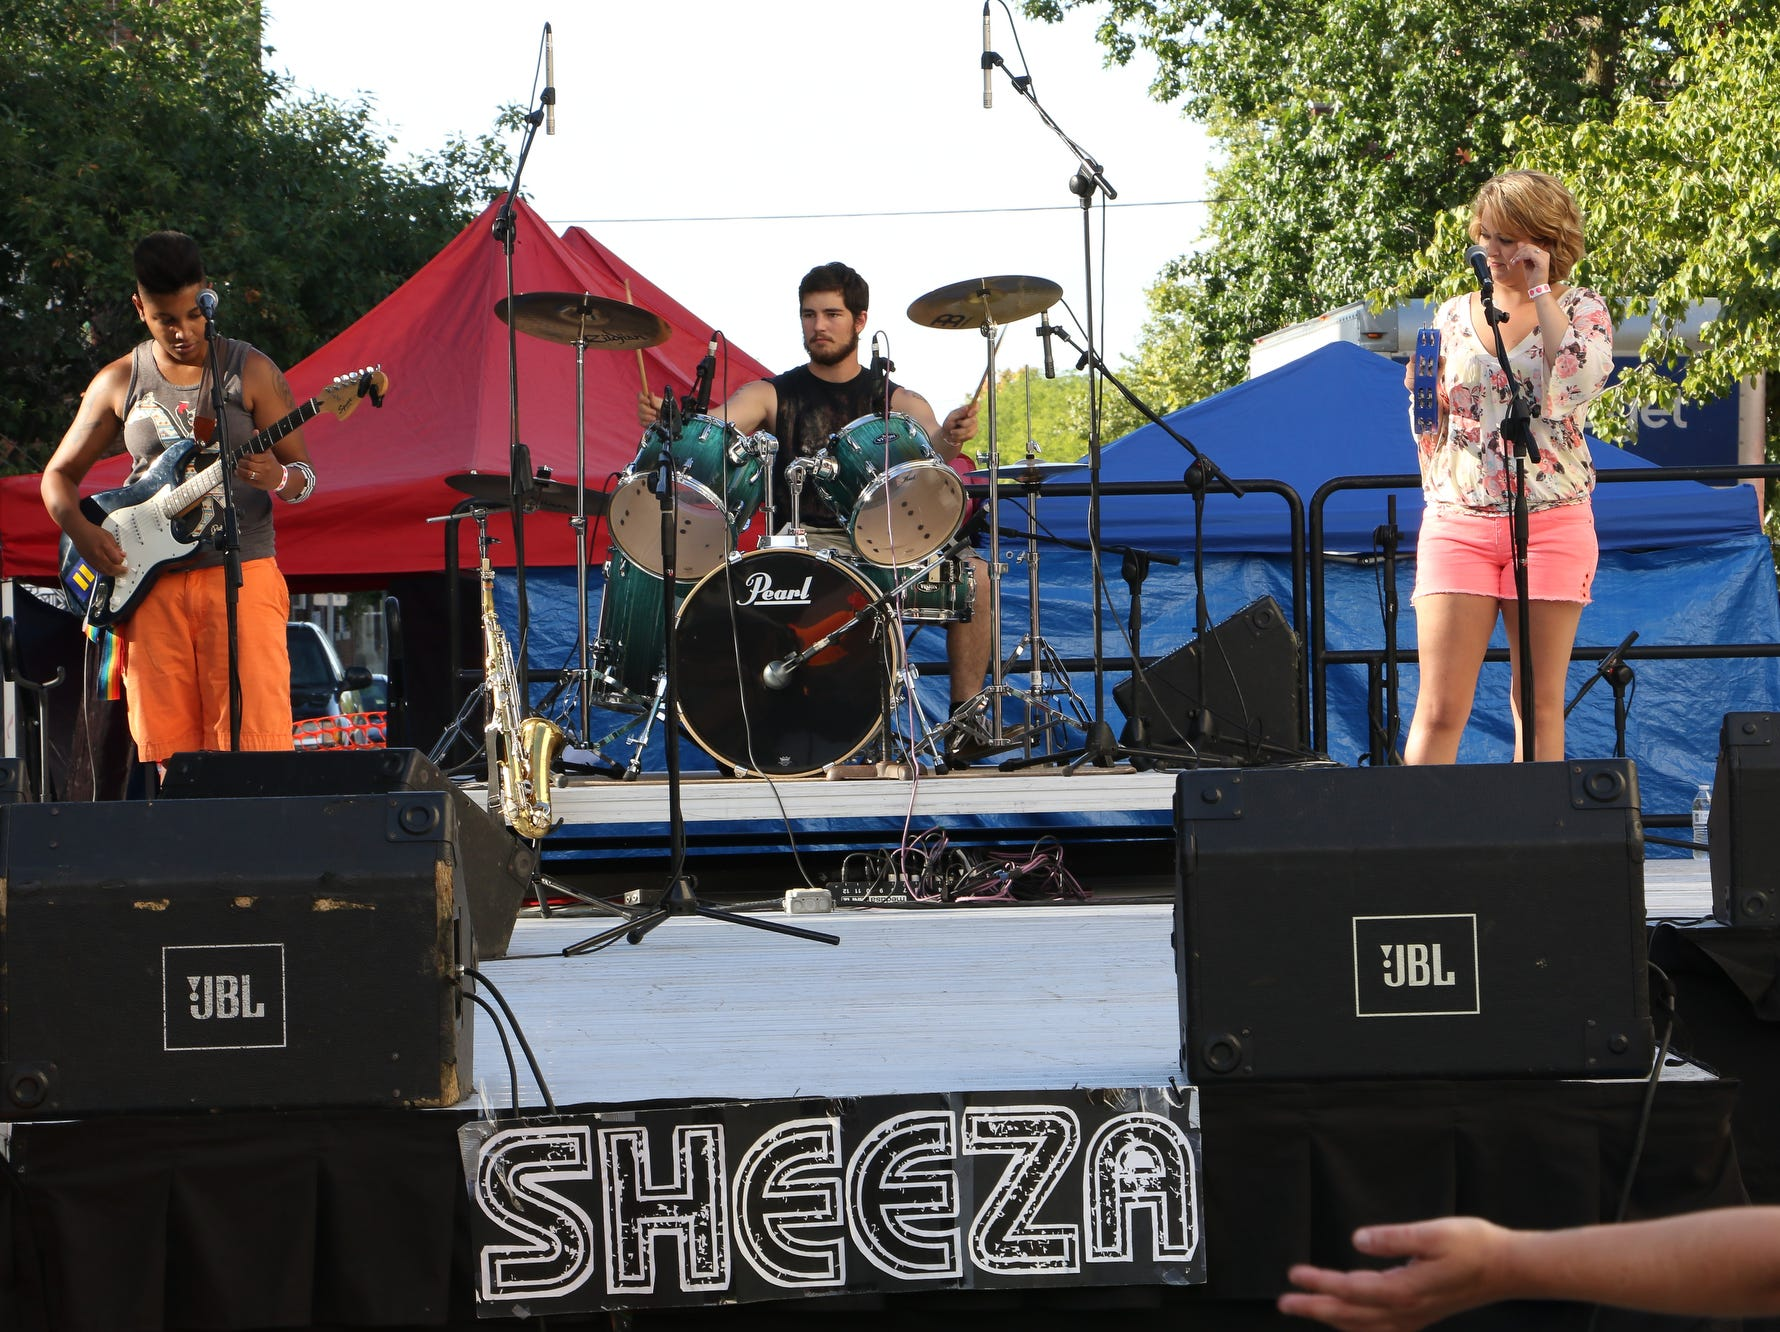 The band Sheeza will return to perform during OUTfest on Saturday night in downtown Lafayette.